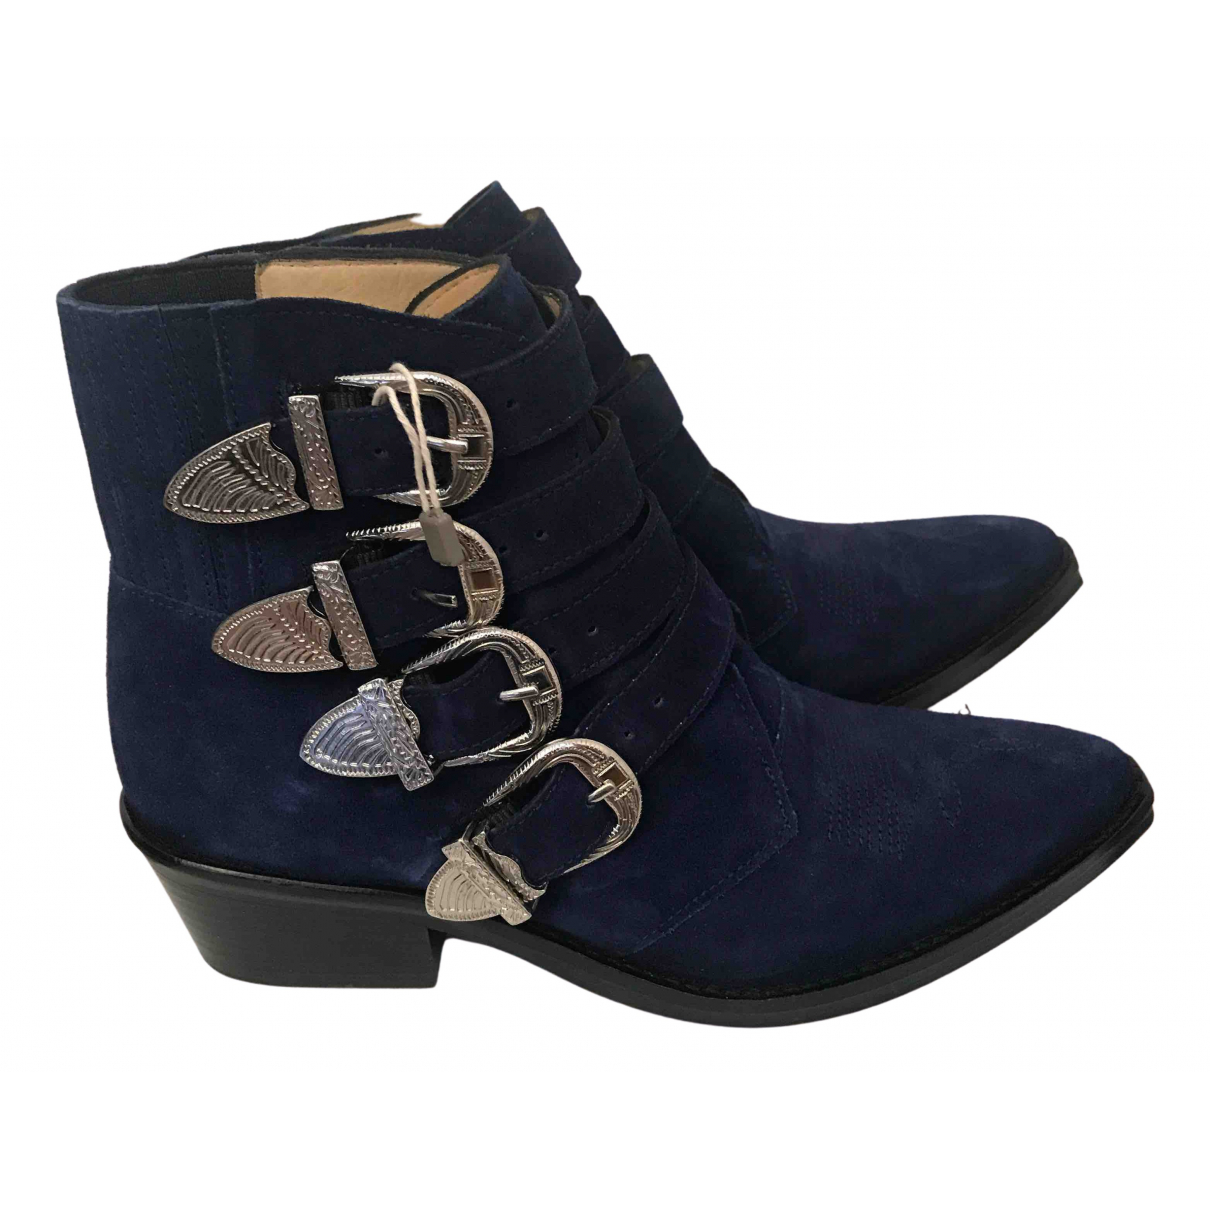 Toga Pulla \N Blue Suede Boots for Women 36 EU